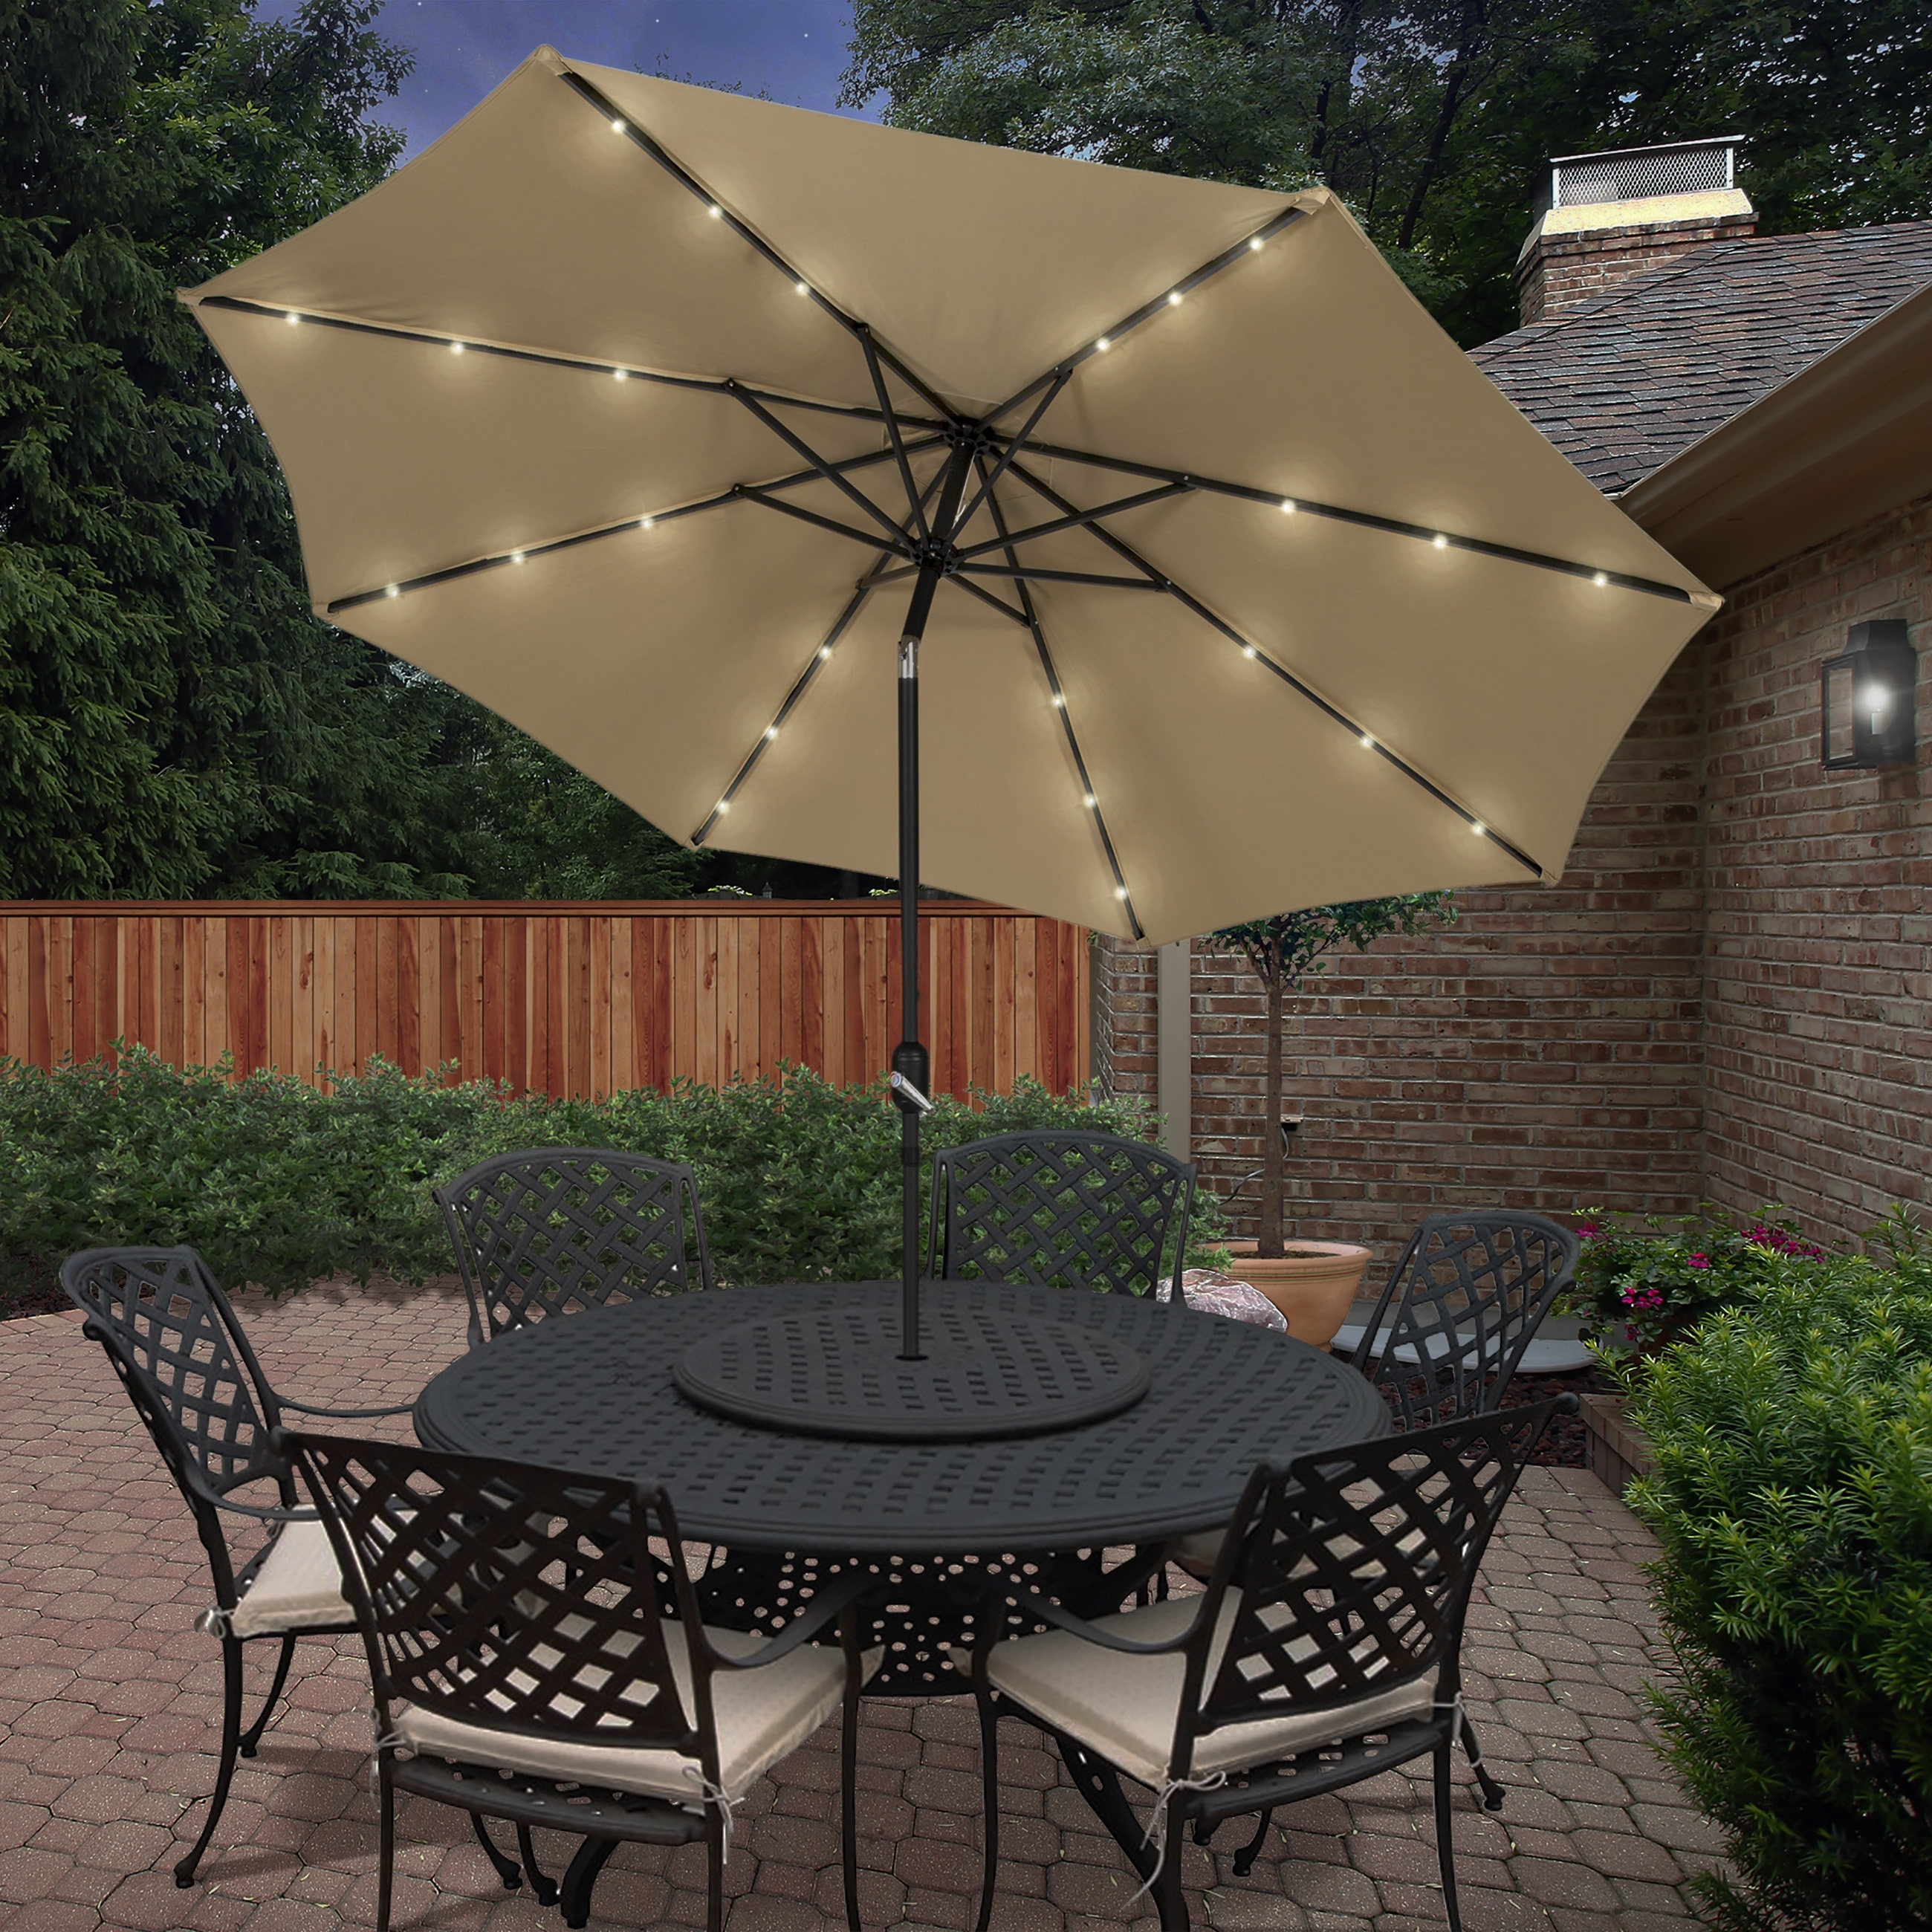 Most Recent Best Choice Products 10' Deluxe Solar Led Lighted Patio Umbrella Throughout Deluxe Patio Umbrellas (View 7 of 20)